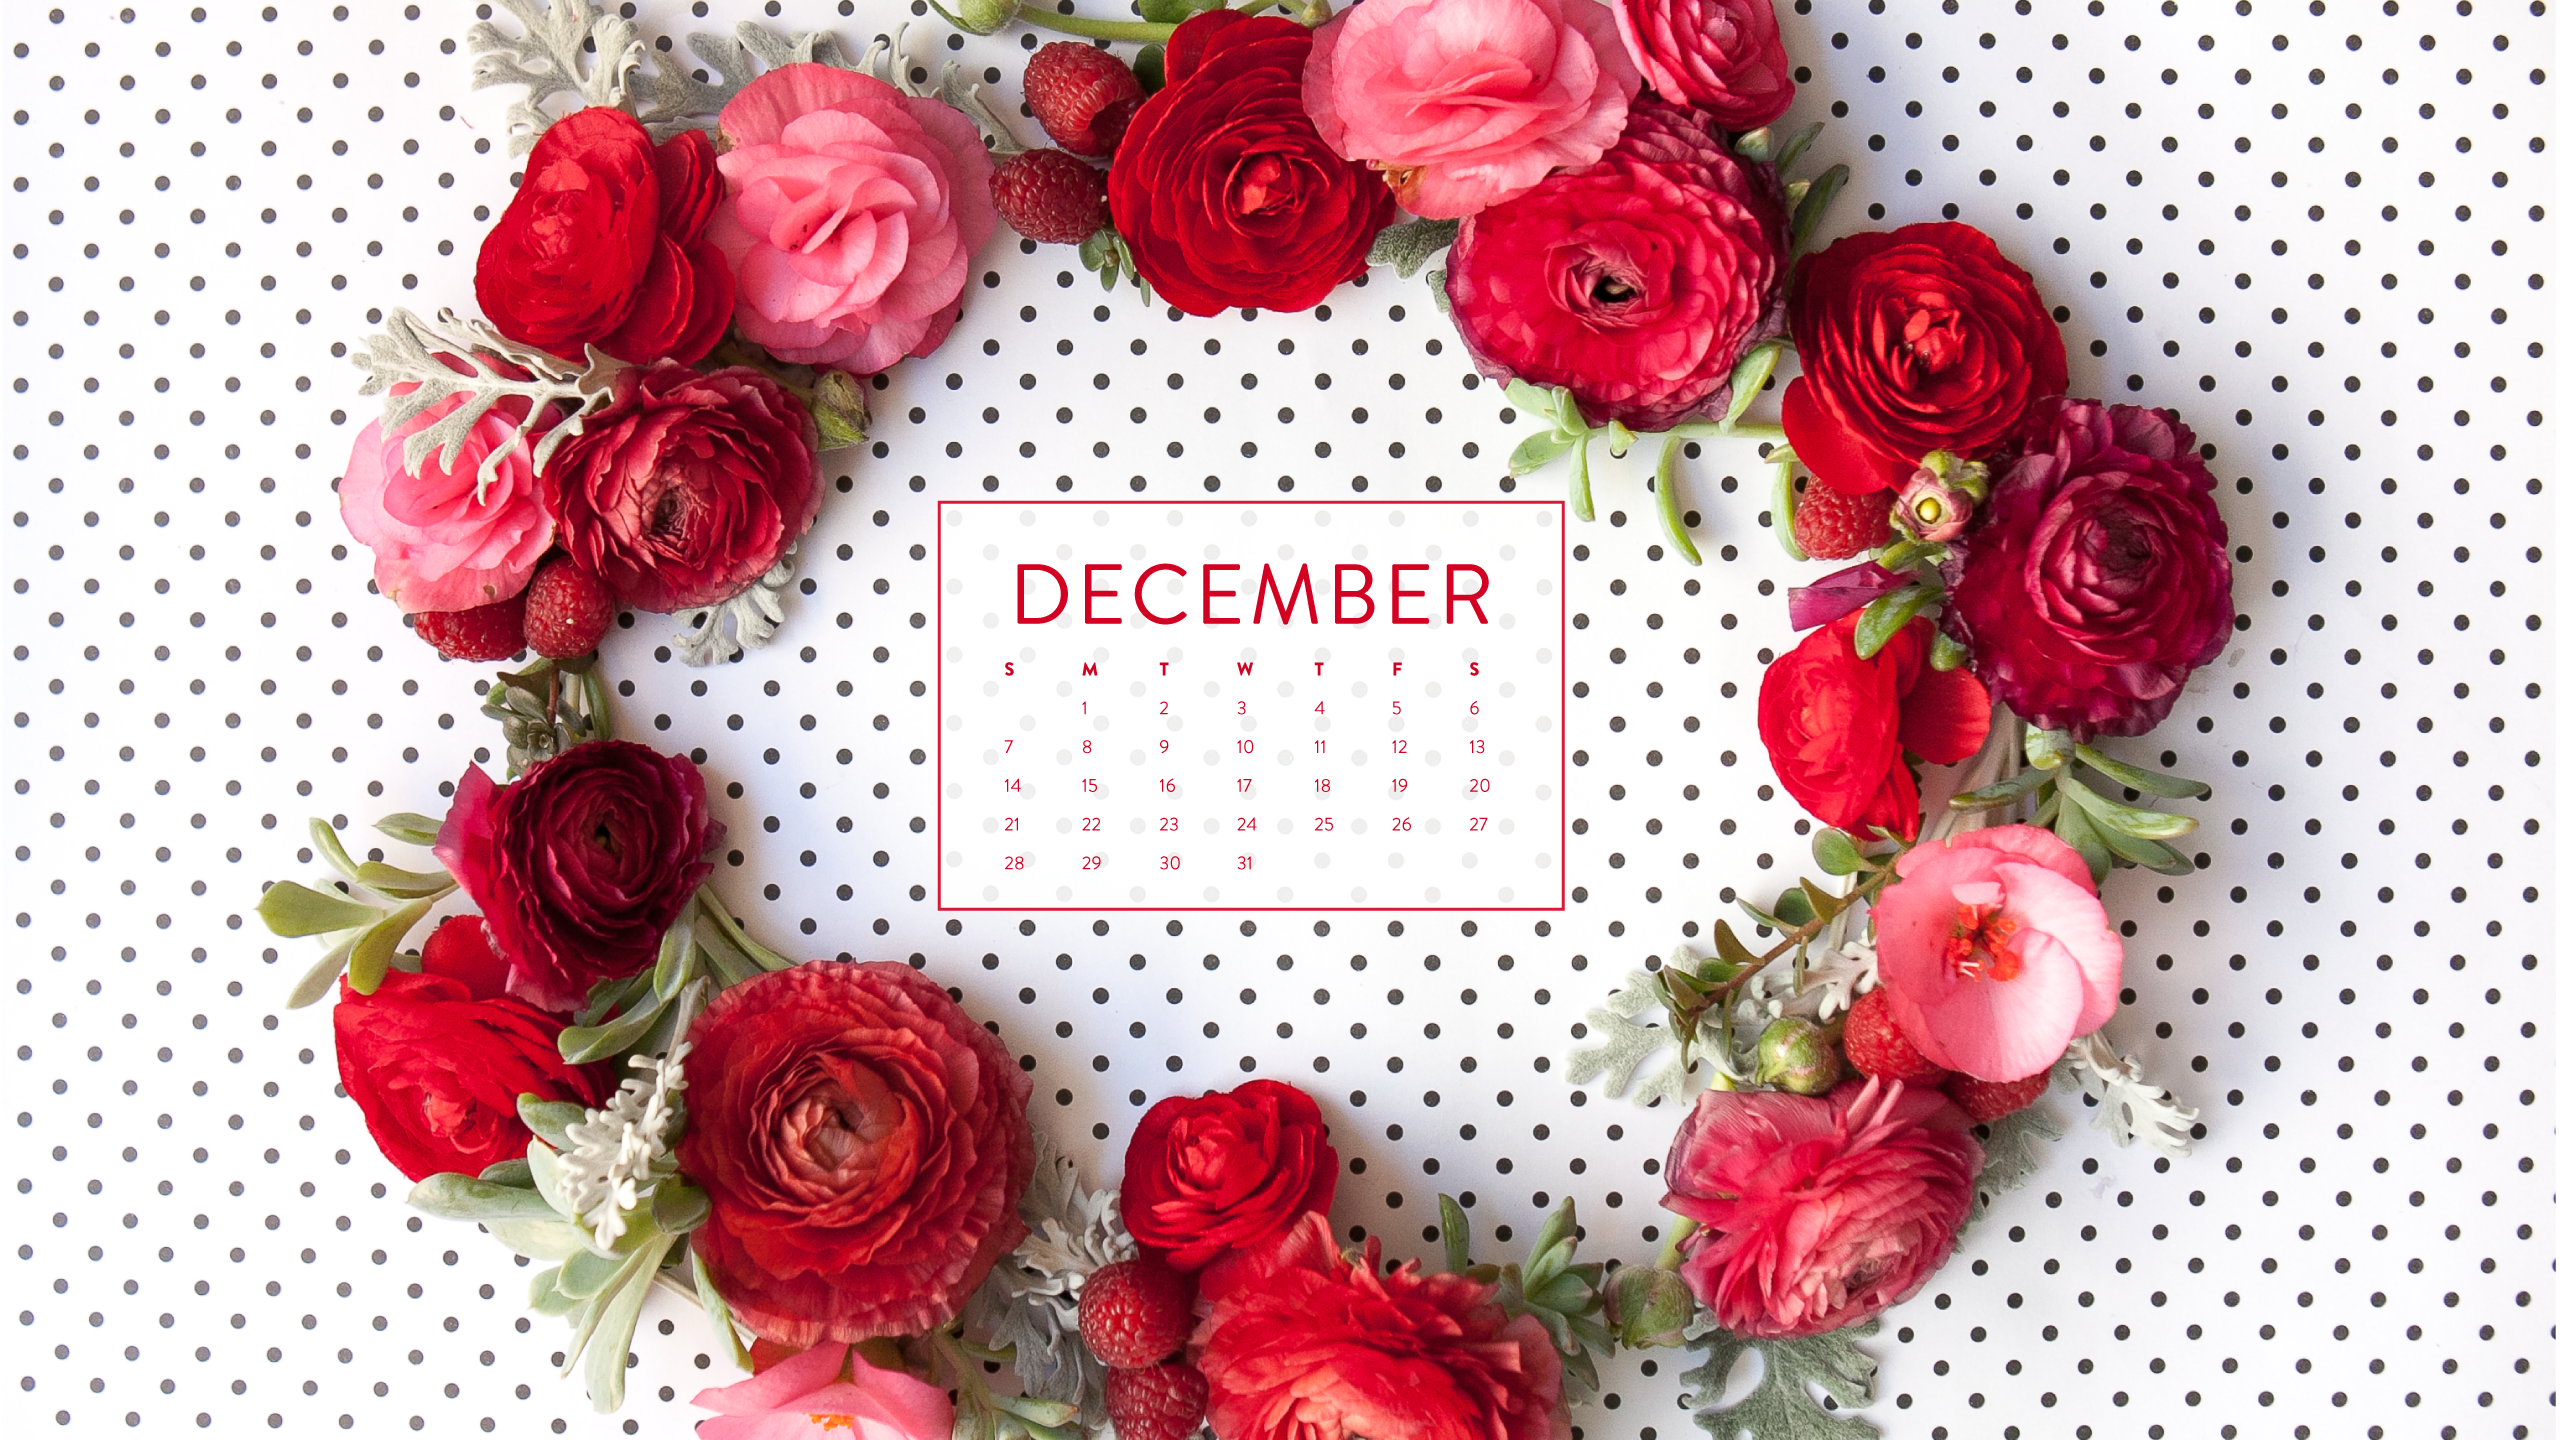 happy december! desktop & iphone wallpapers! – ashlee proffitt